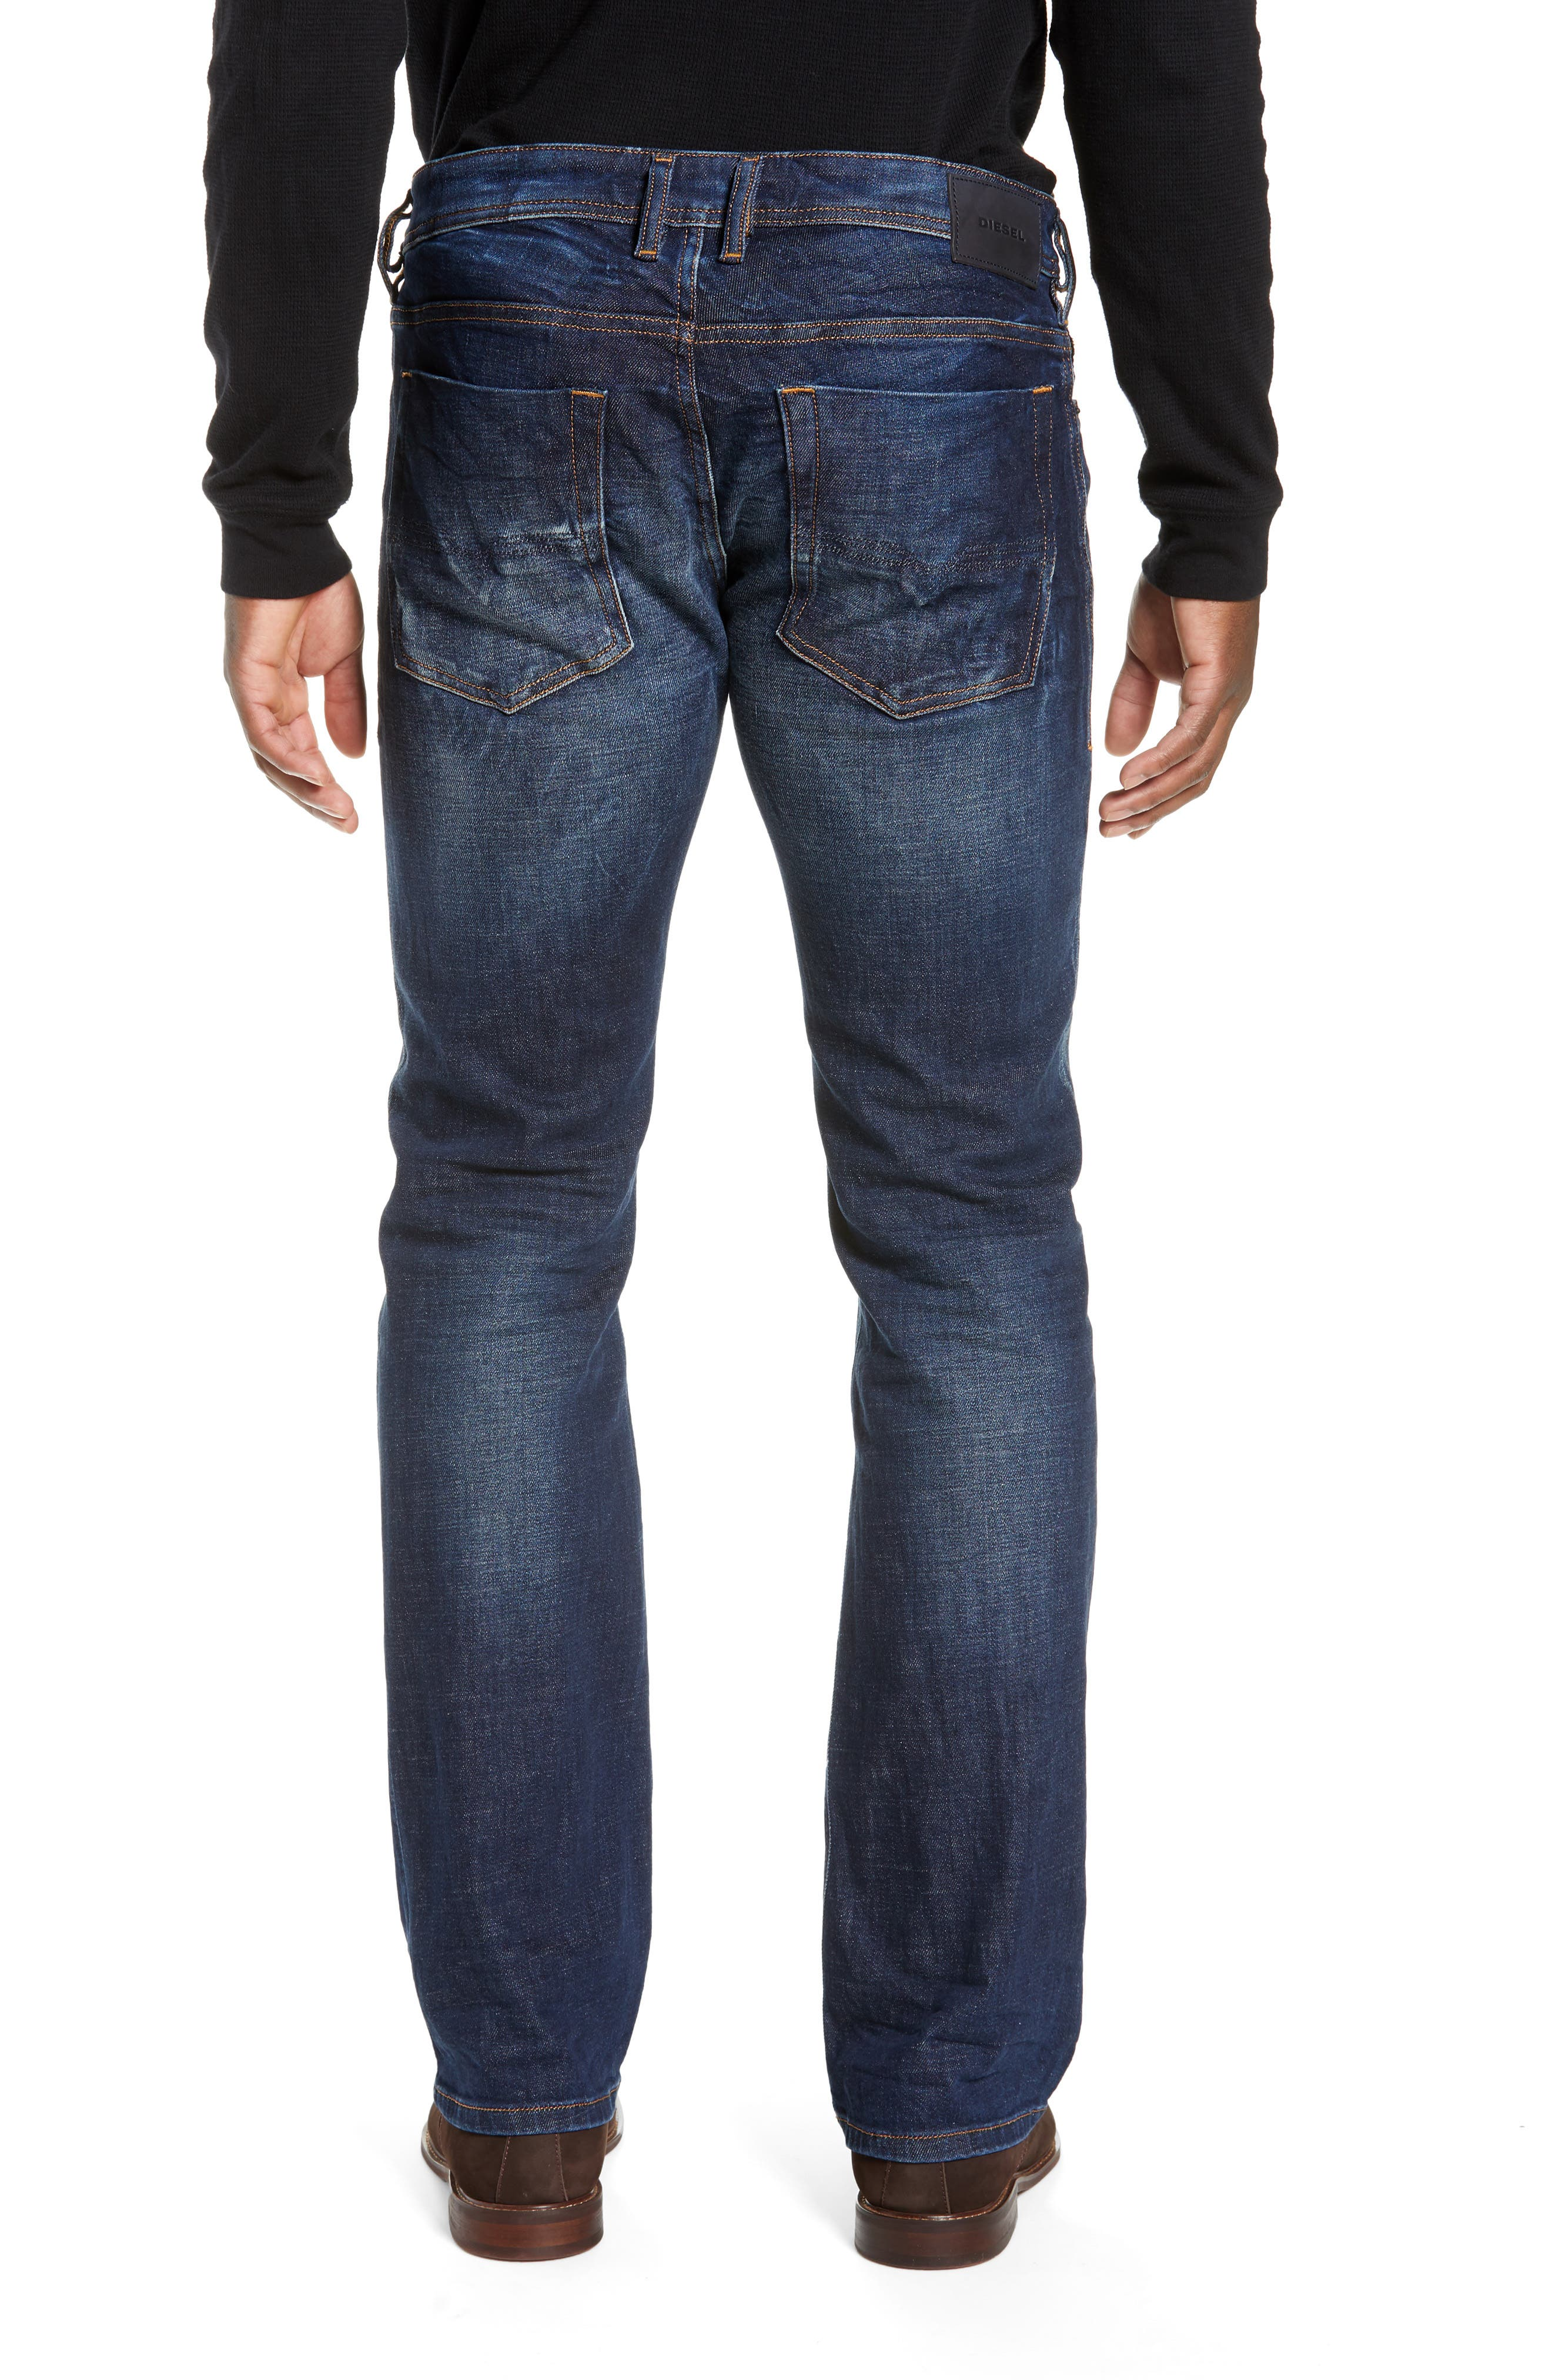 Zatiny Bootcut Jeans,                             Alternate thumbnail 2, color,                             087AT